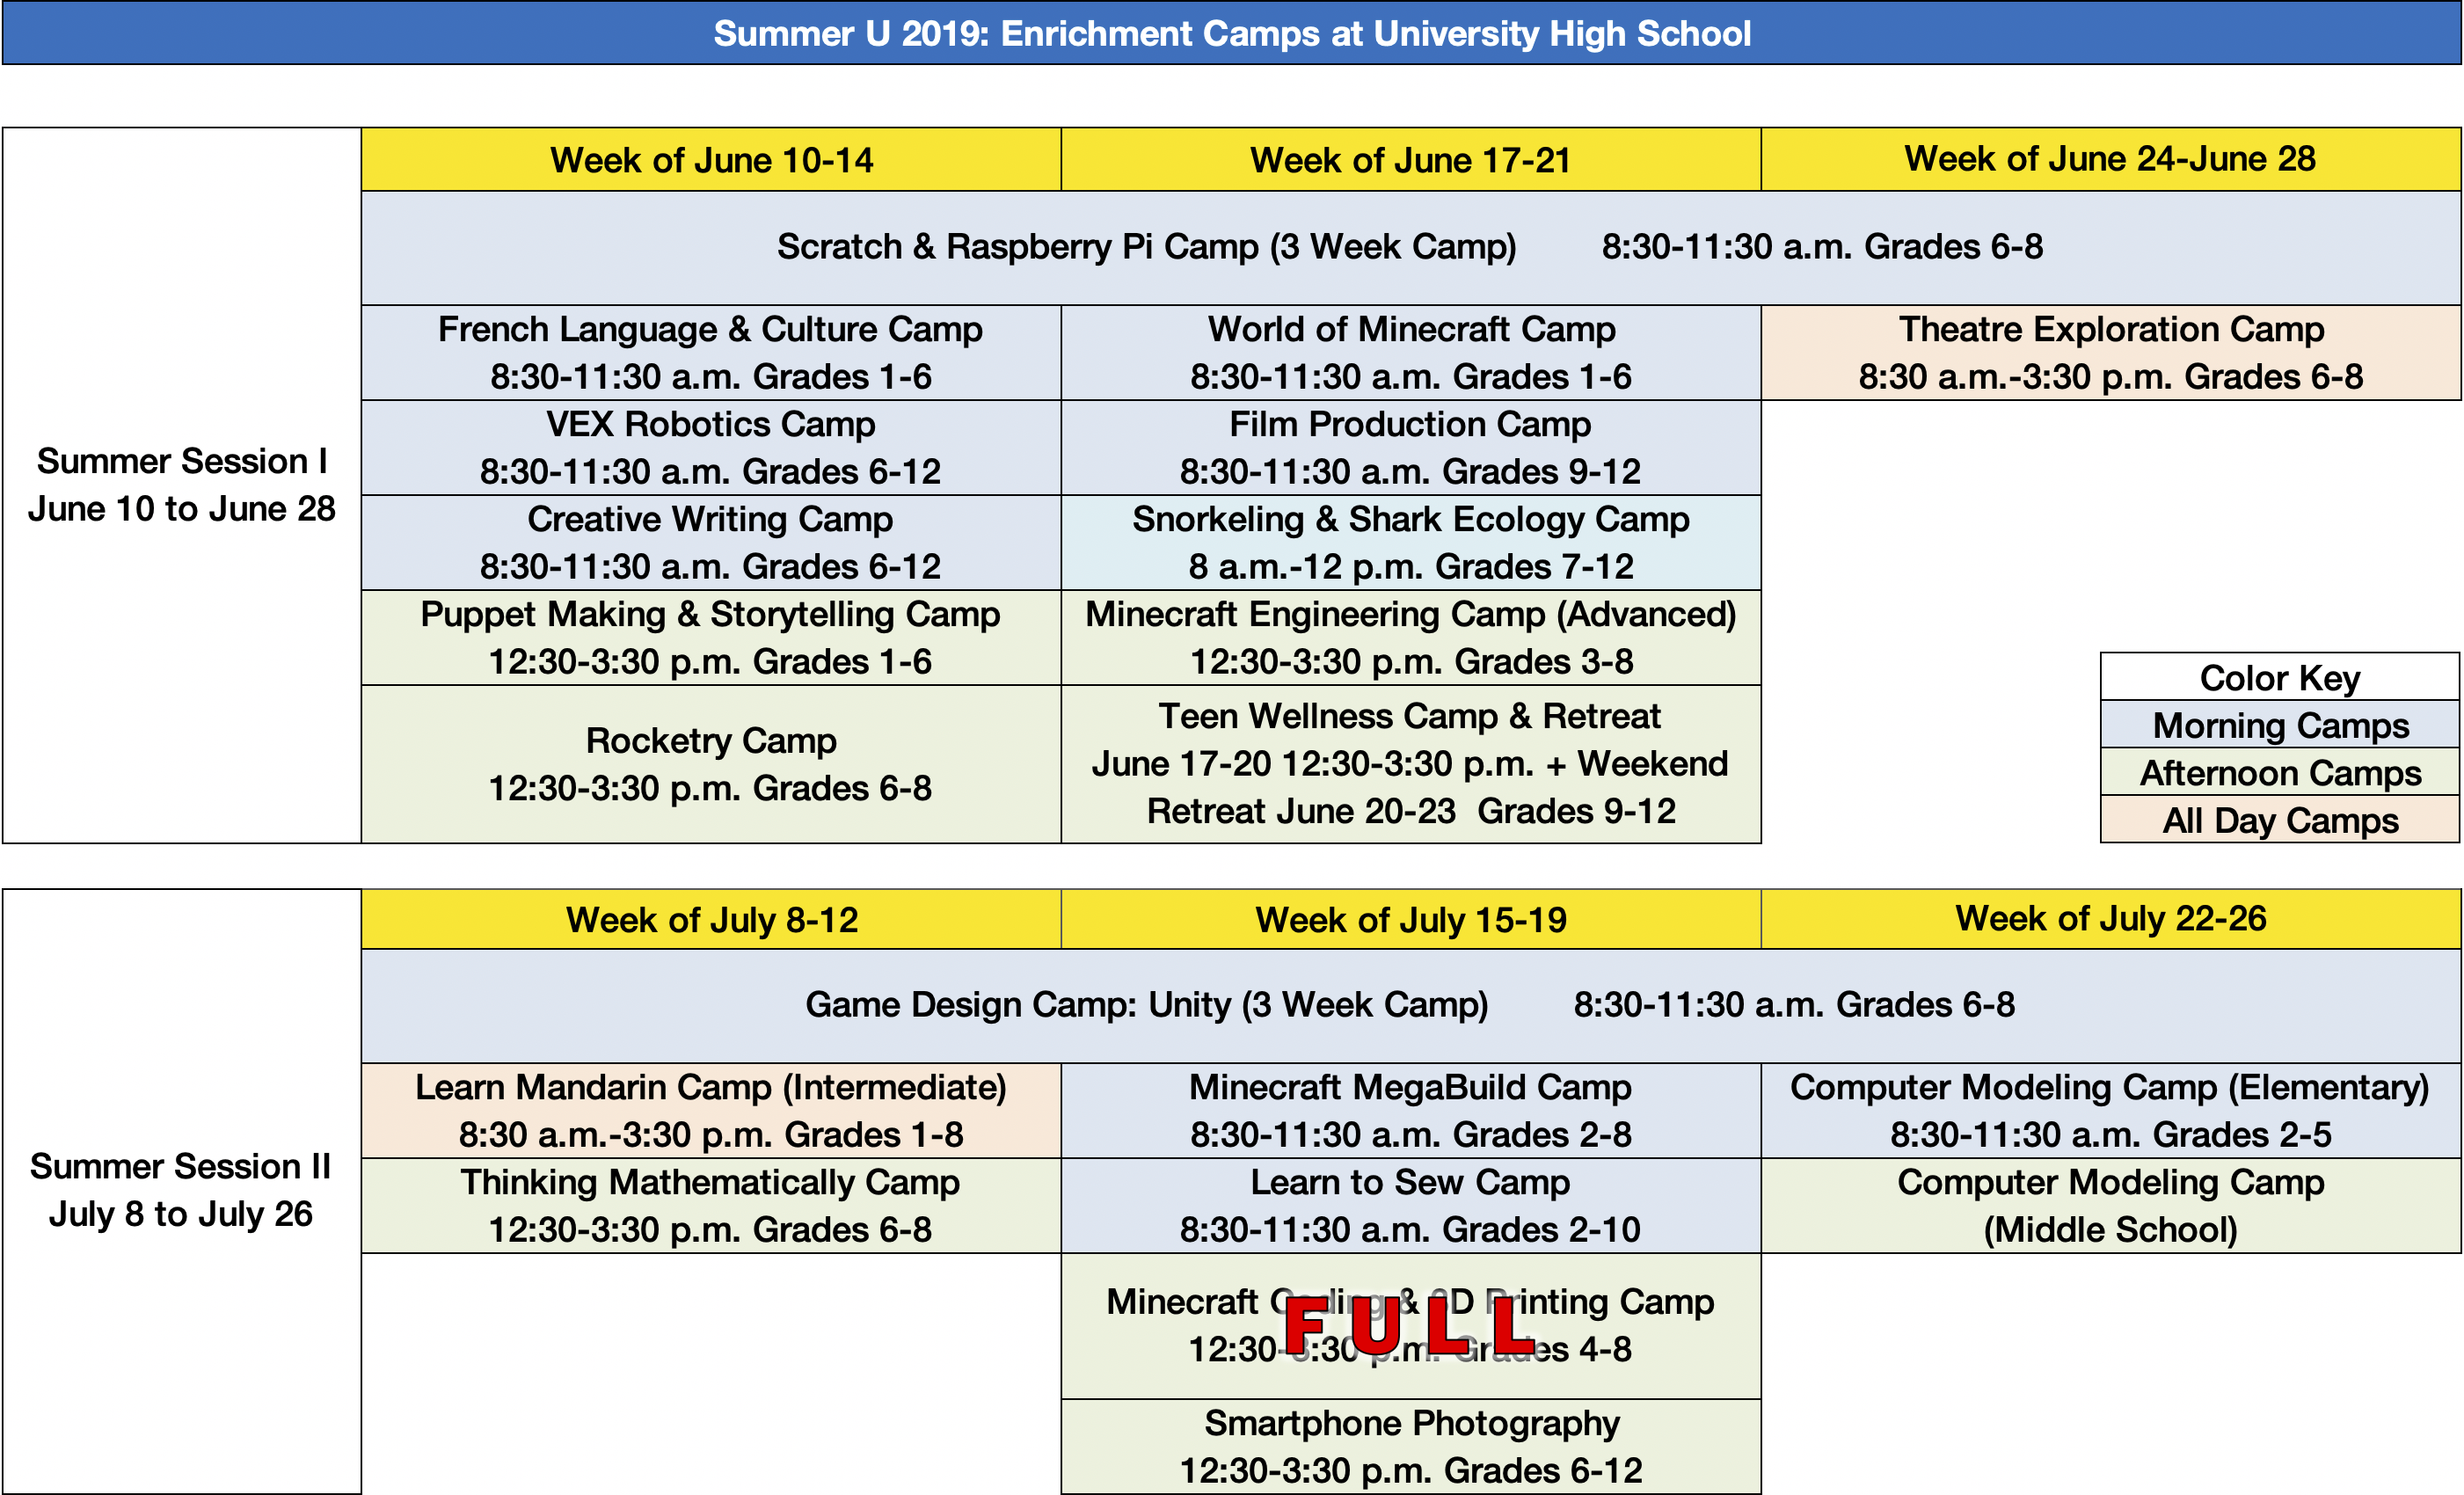 summer camps grid 5-6-19 - University High School